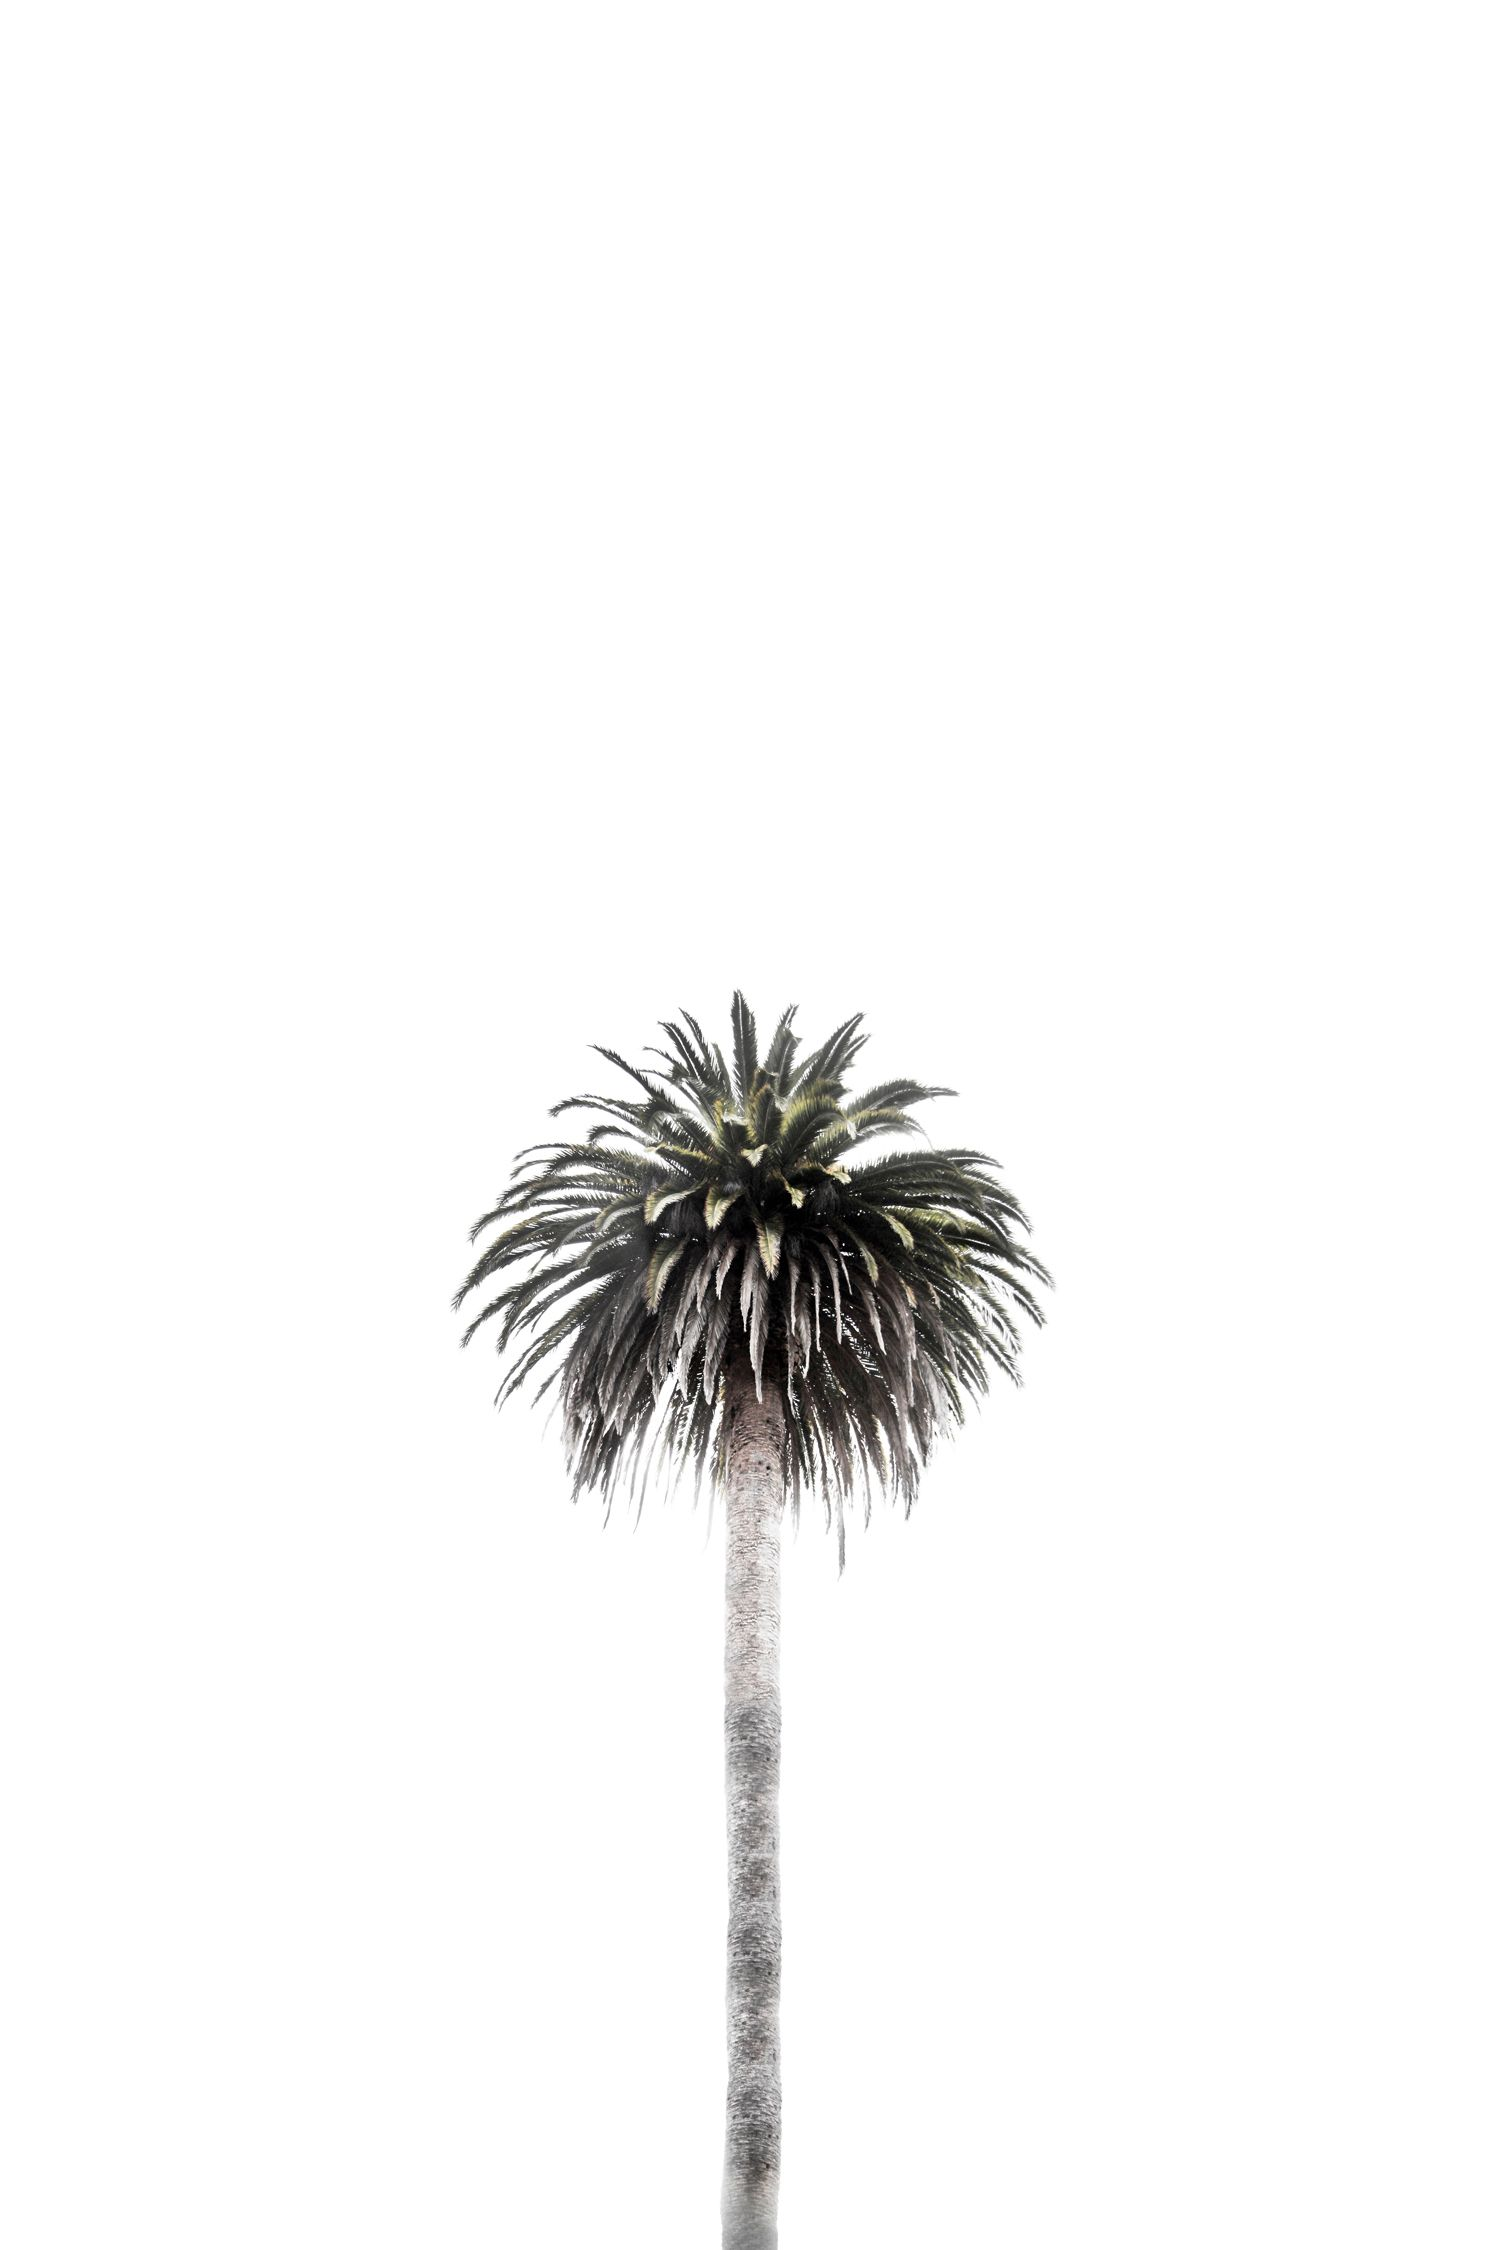 Pin by Mishka on Inspirational Quotes Palm tree background 1500x2250